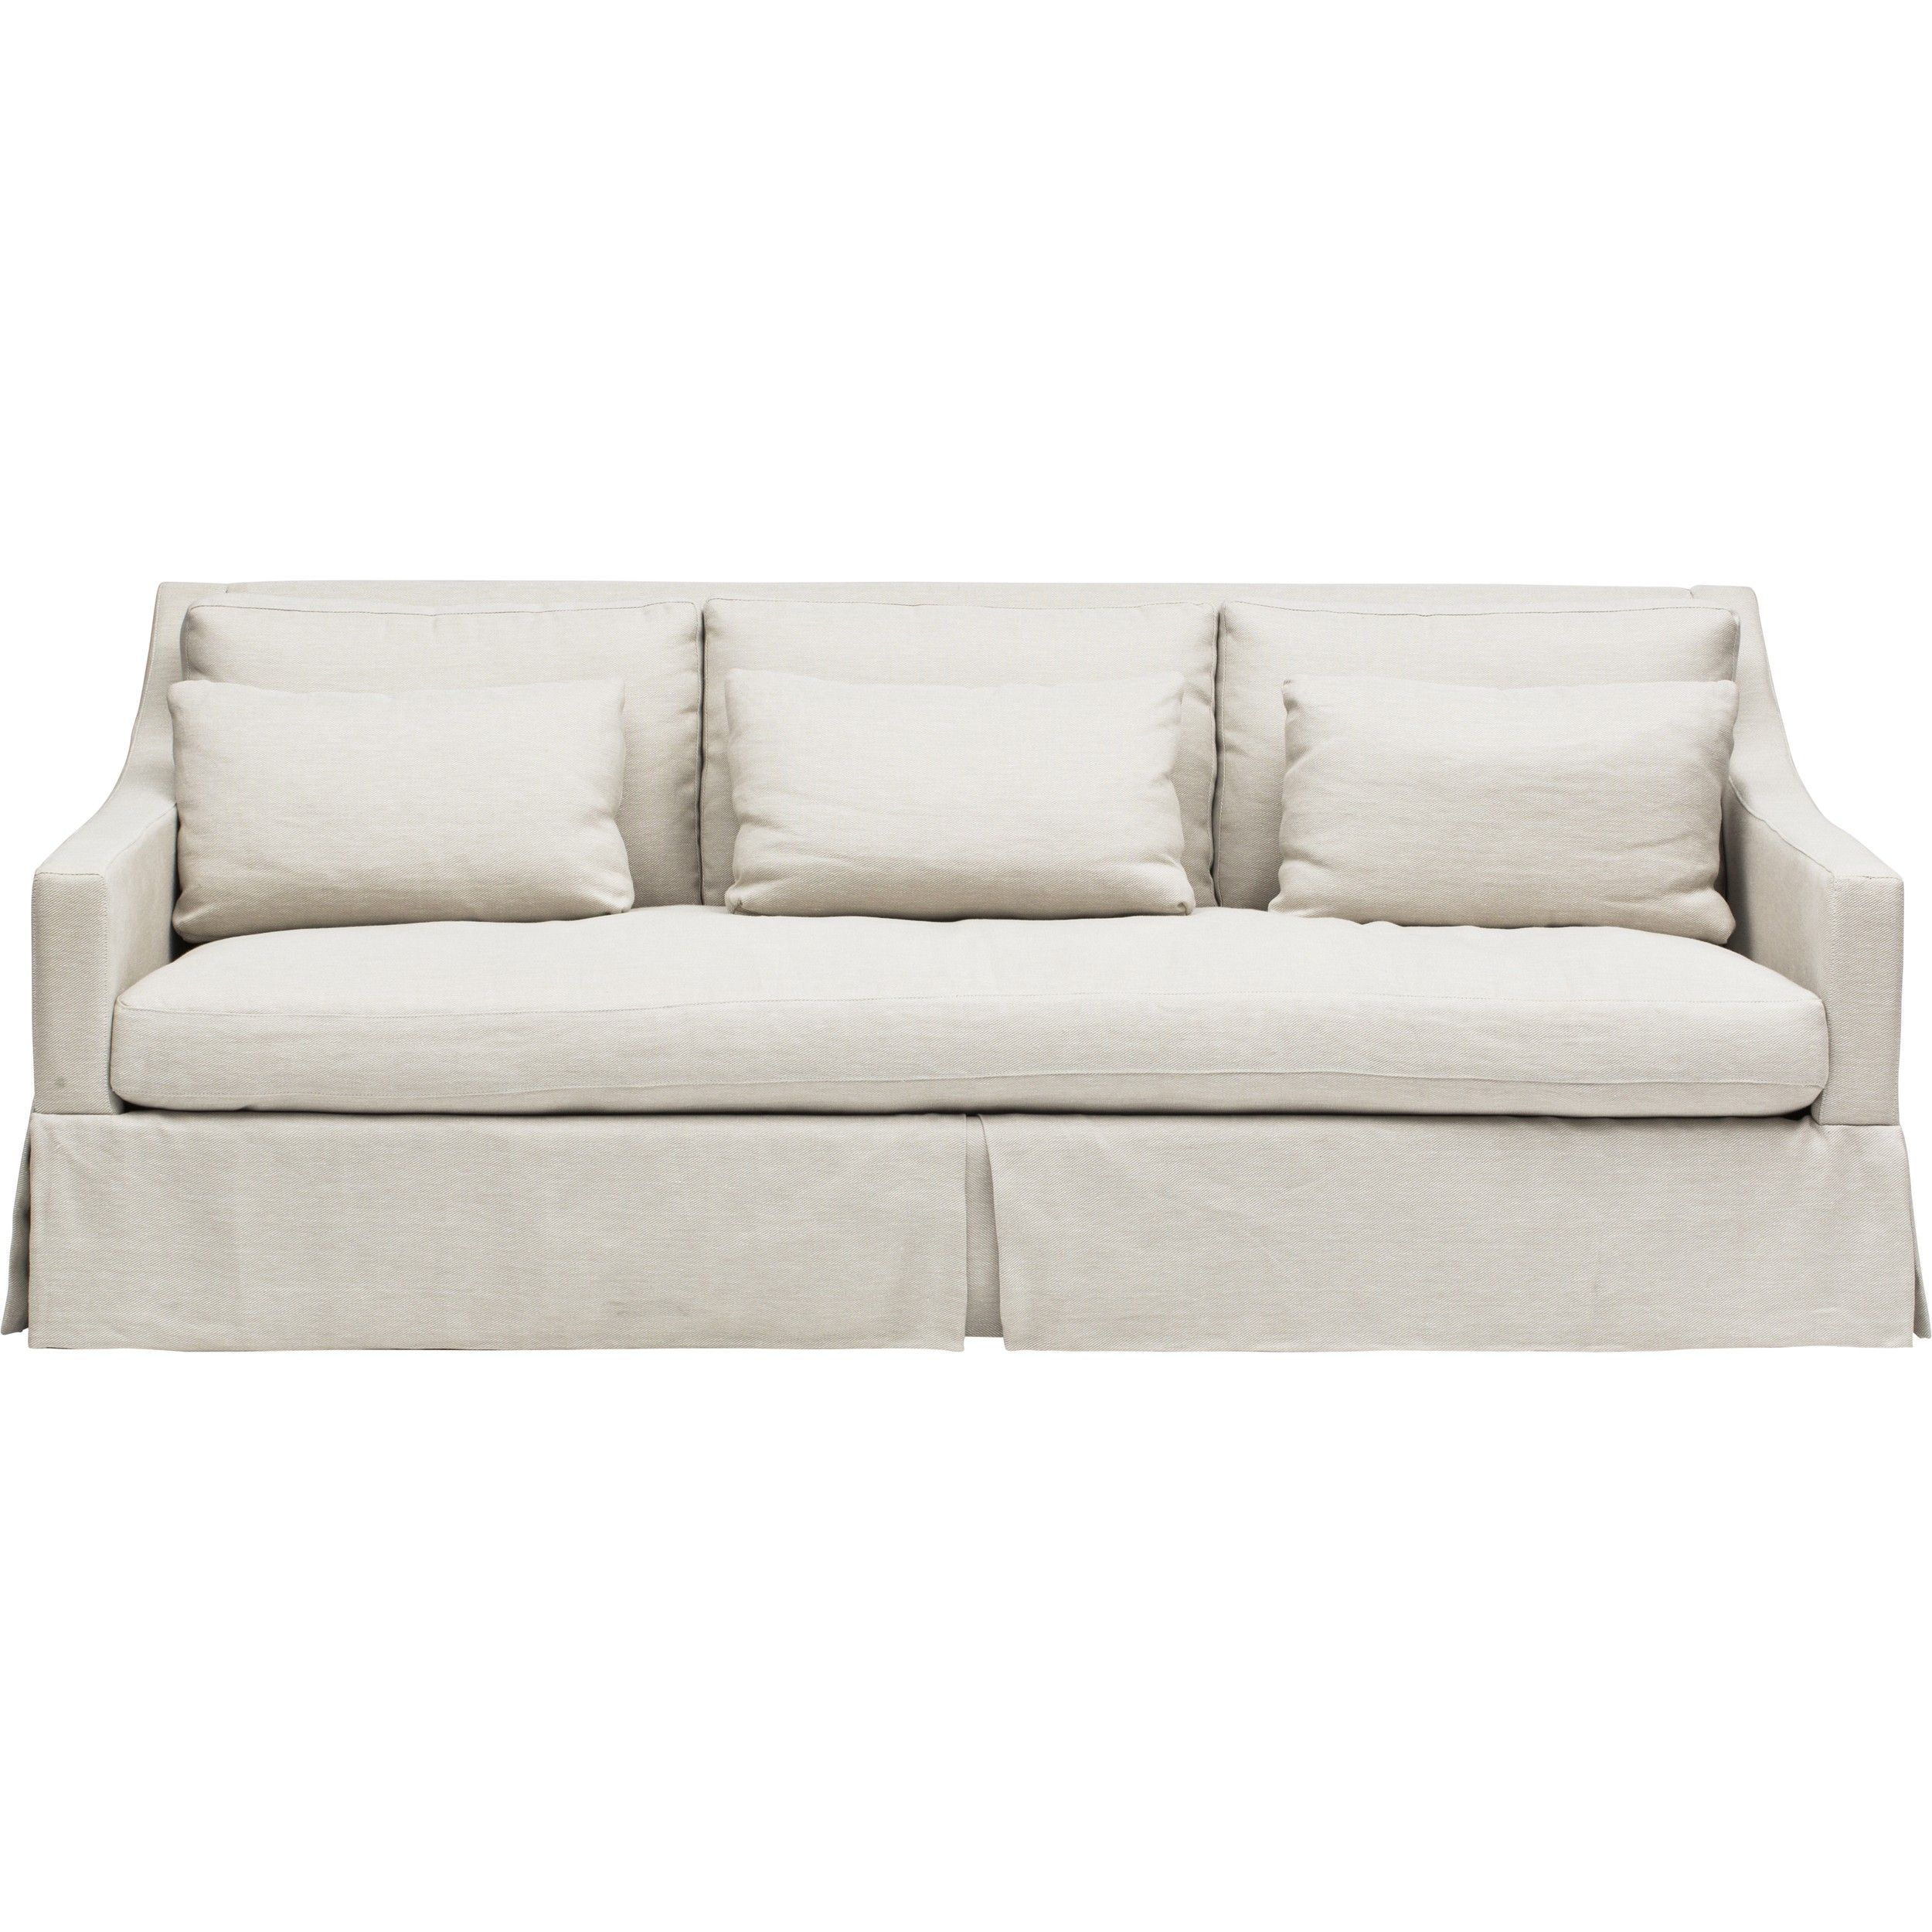 Albion Sofa $1 679 00 High Fashion COUCH Pinterest